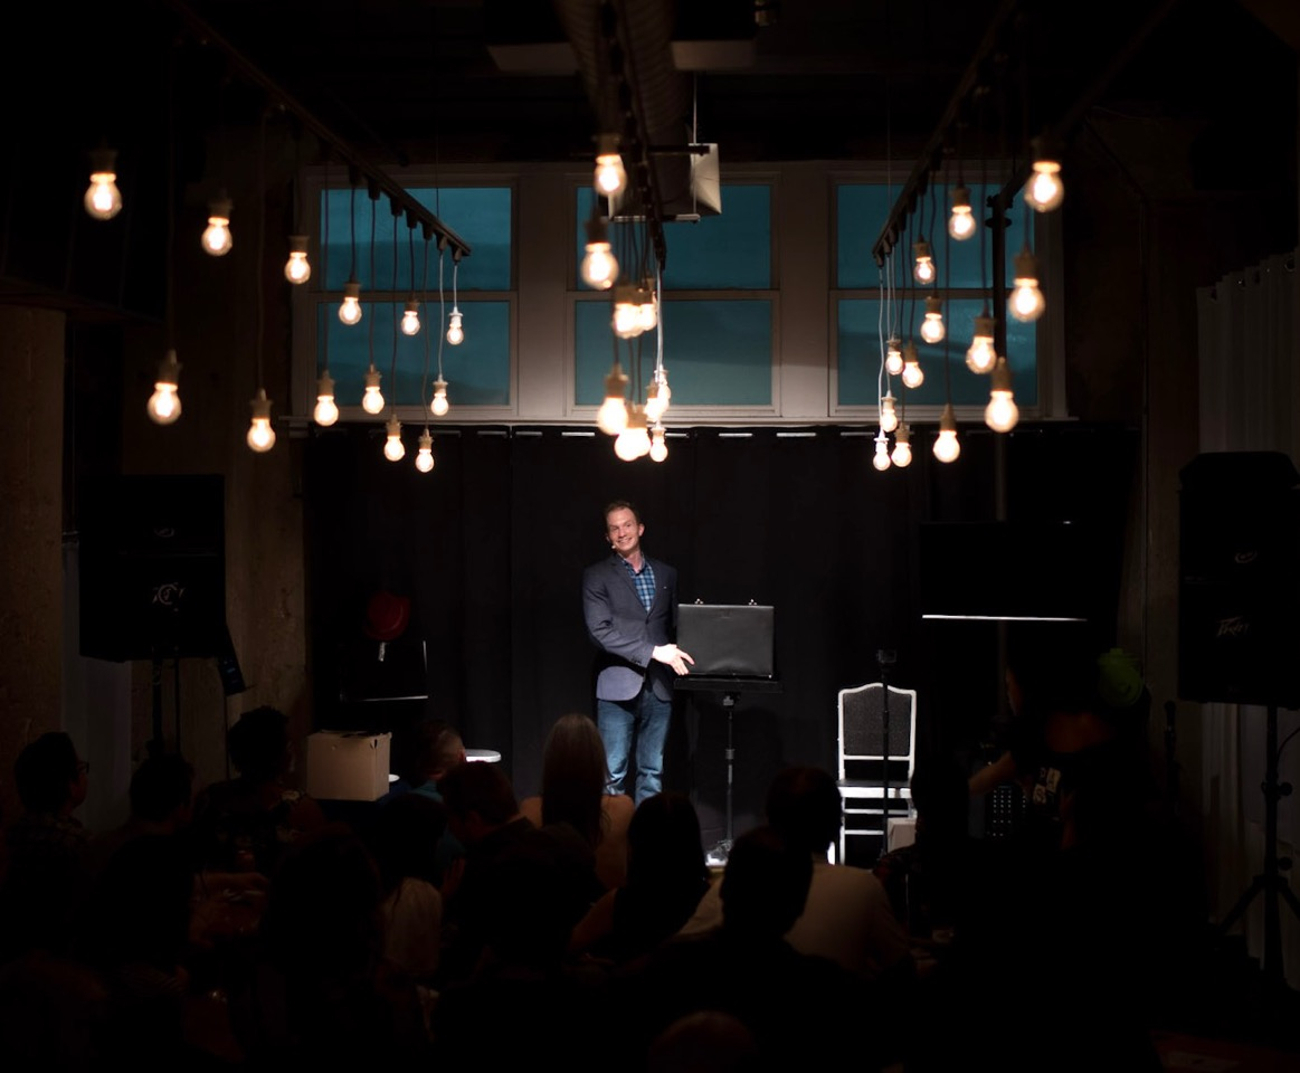 BWW Review: A Mouthful of Magic with Trigg Watson at Checkered Past Winery